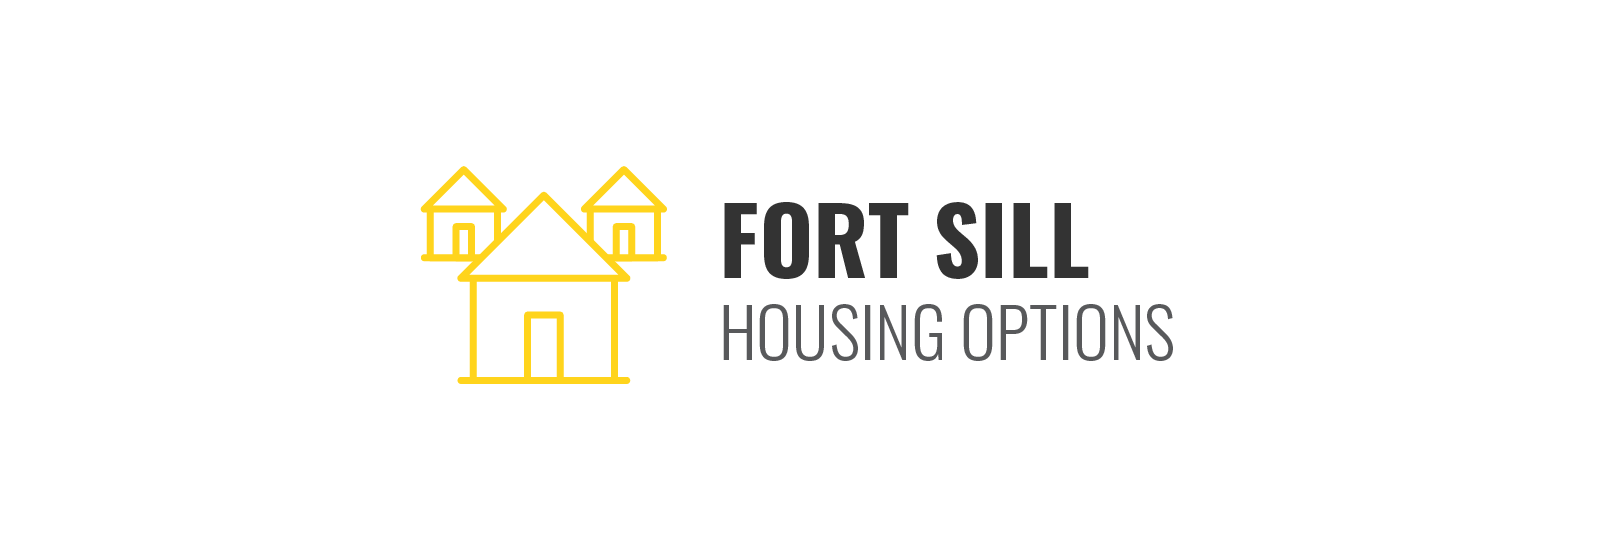 Fort Sill Housing Options